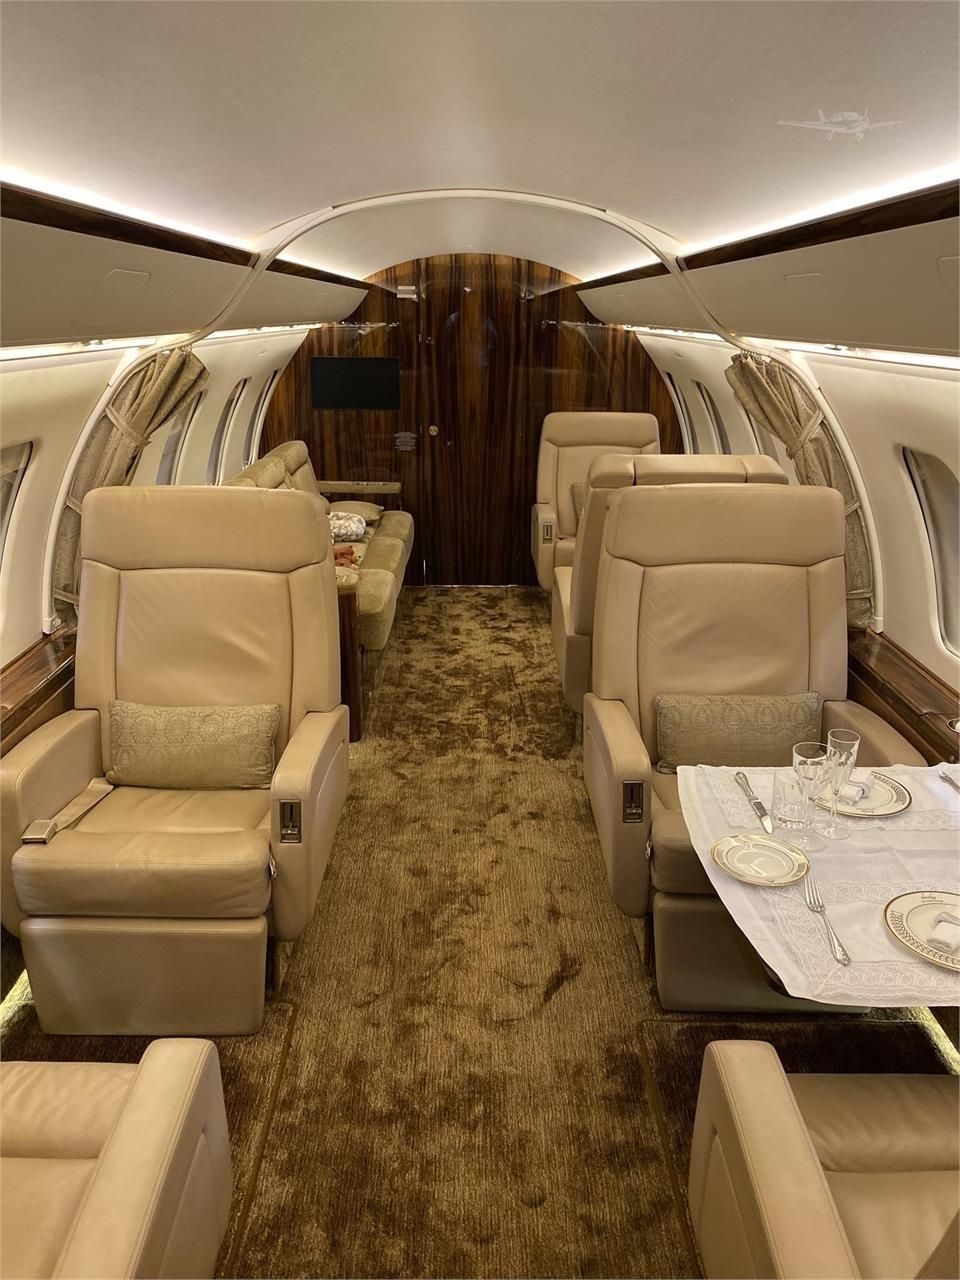 2013 BOMBARDIER/CHALLENGER 605 Photo 6